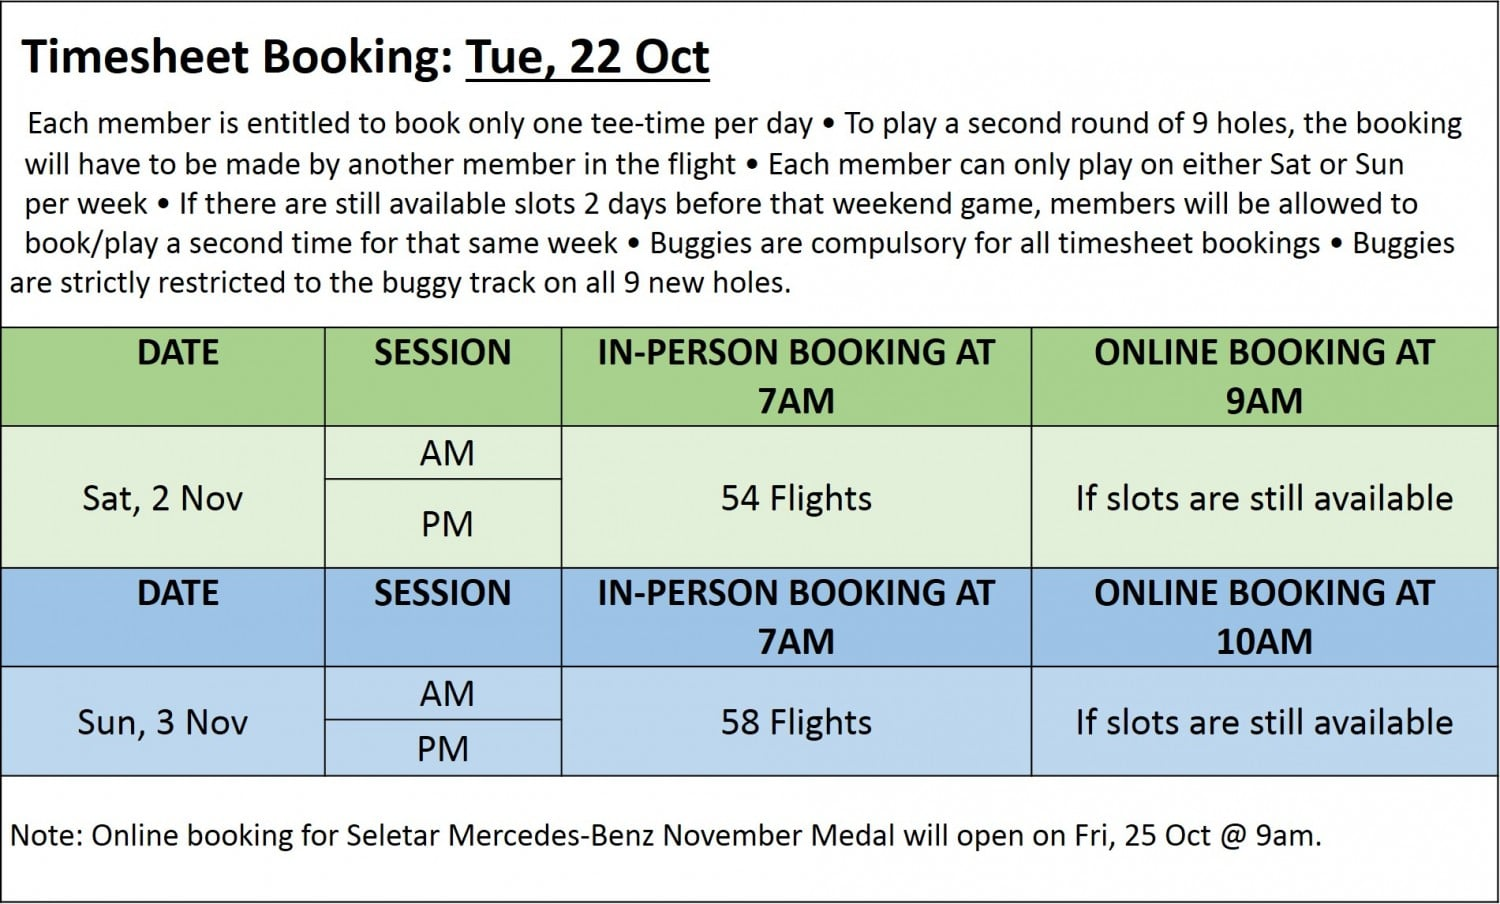 Golf Booking Timesheet 22 Oct